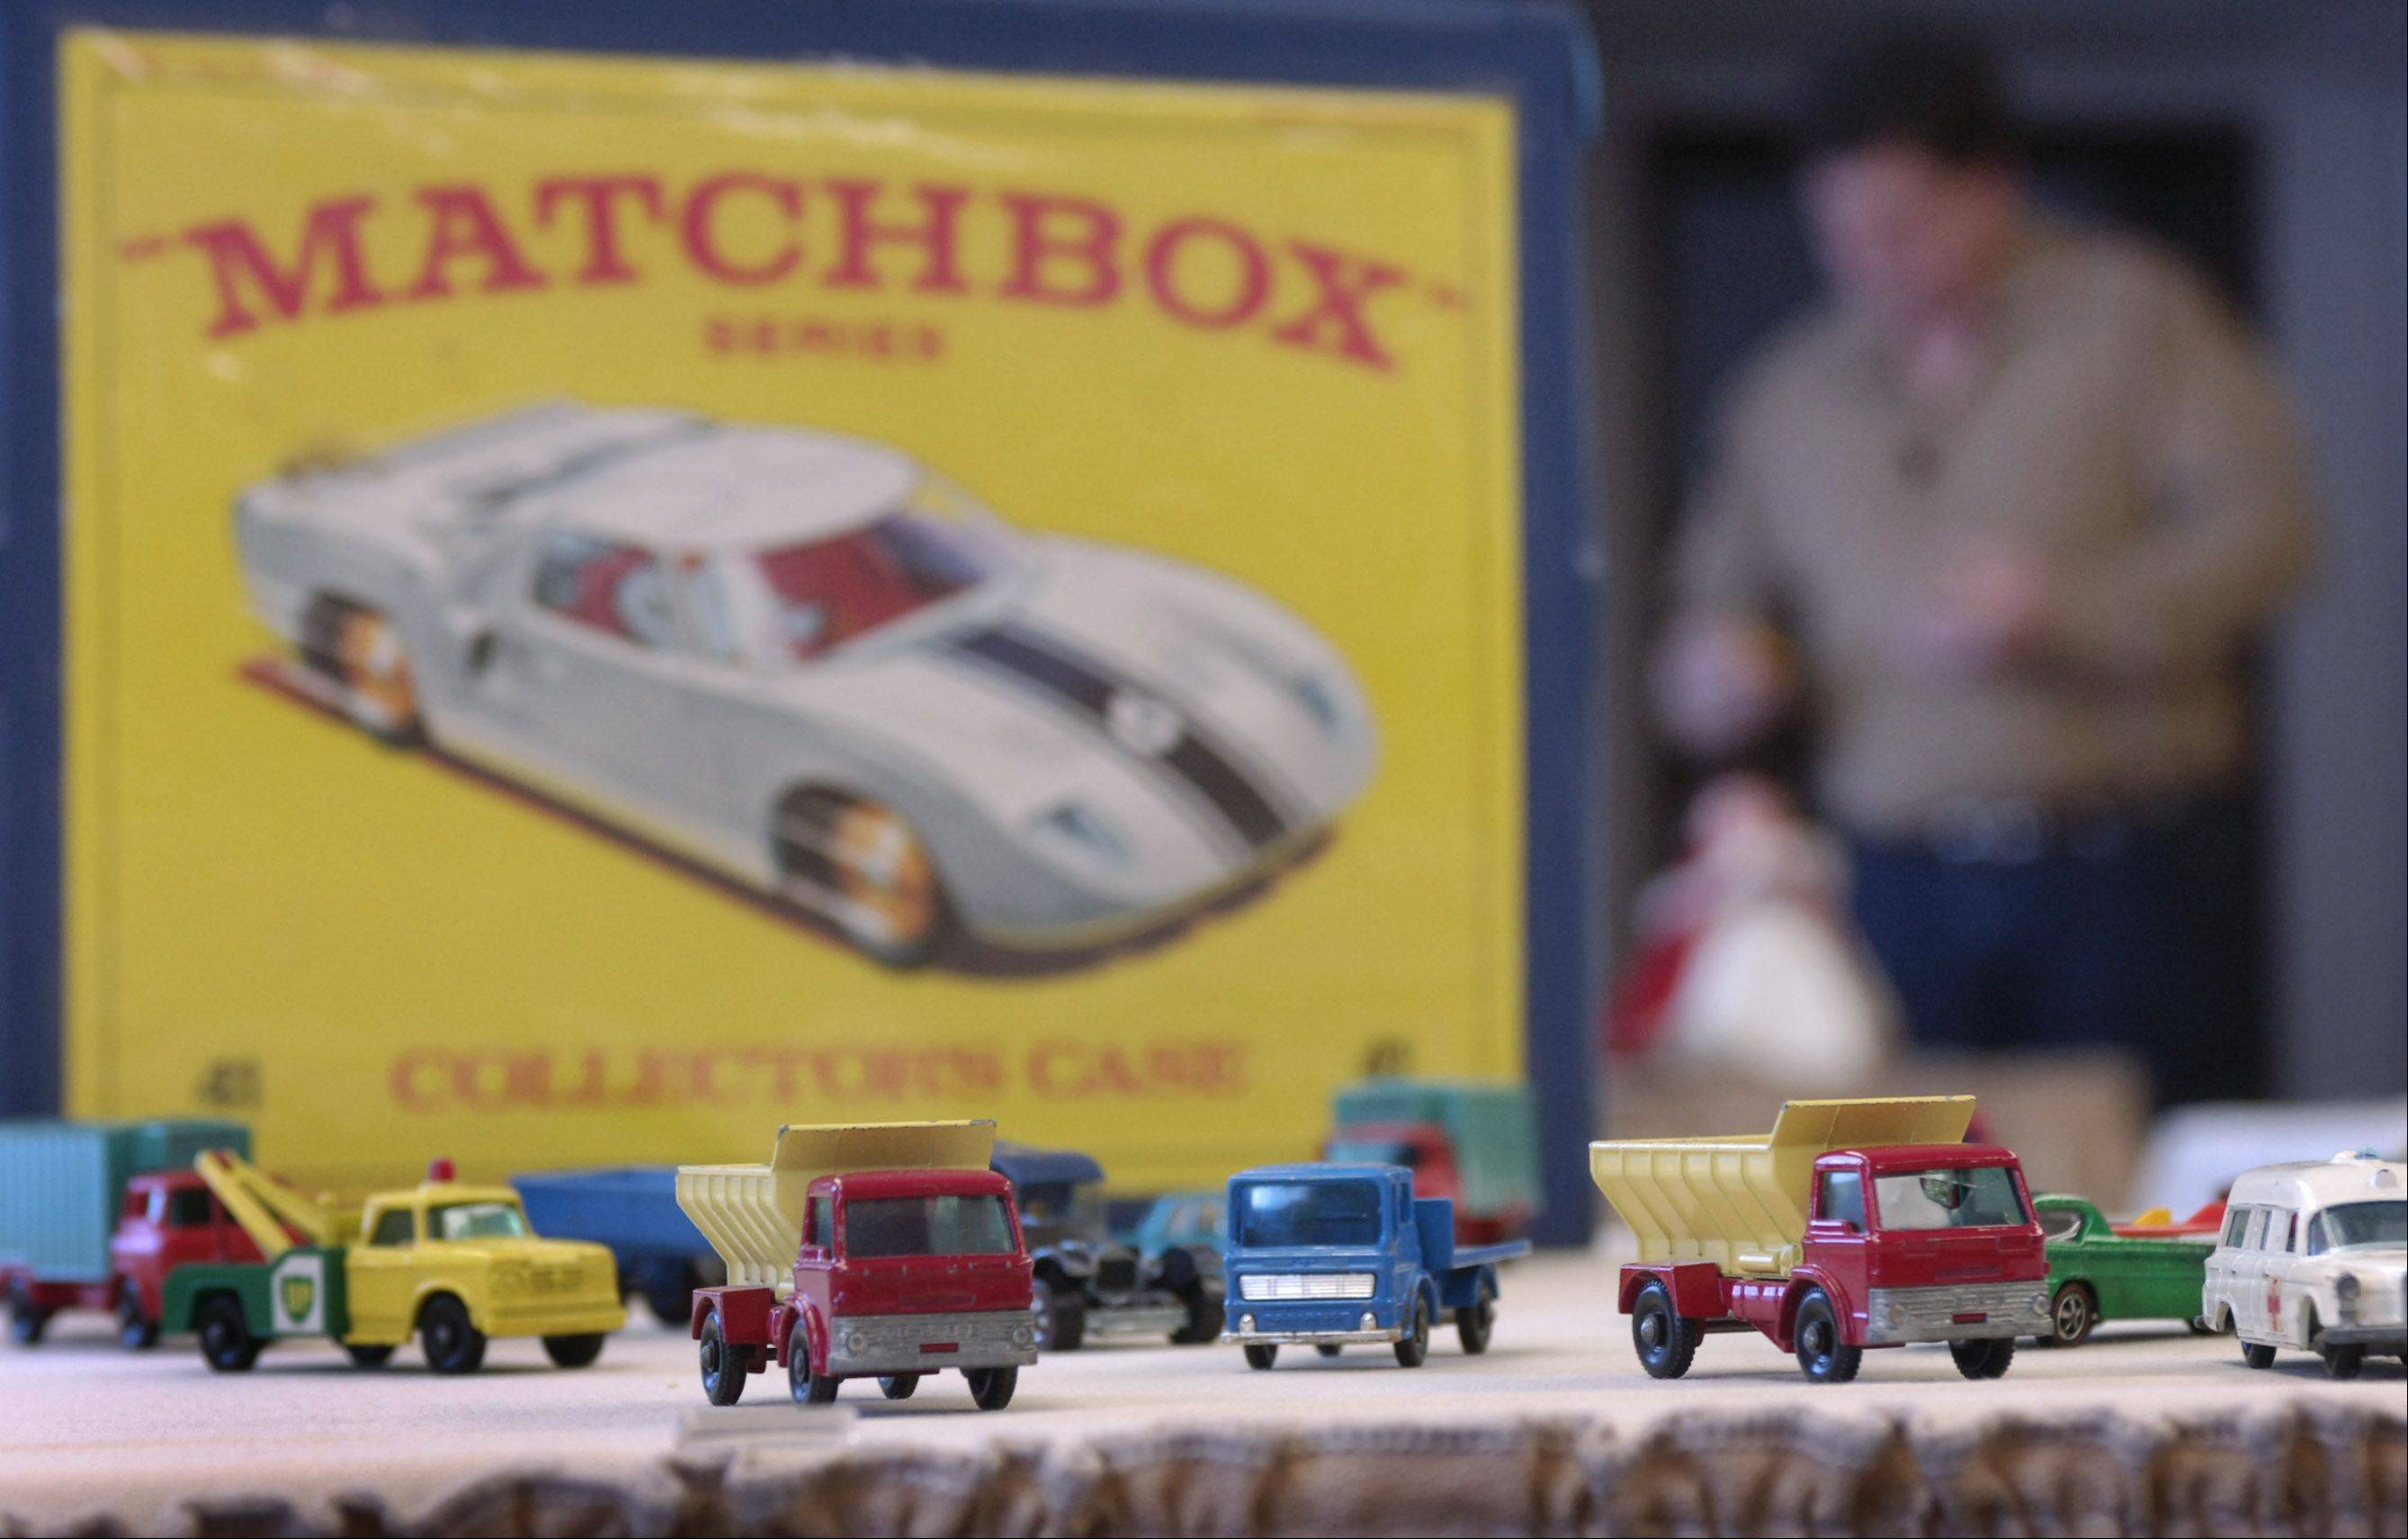 How many Matchbox cars did you have as a child? Do you know how much they might be worth today?